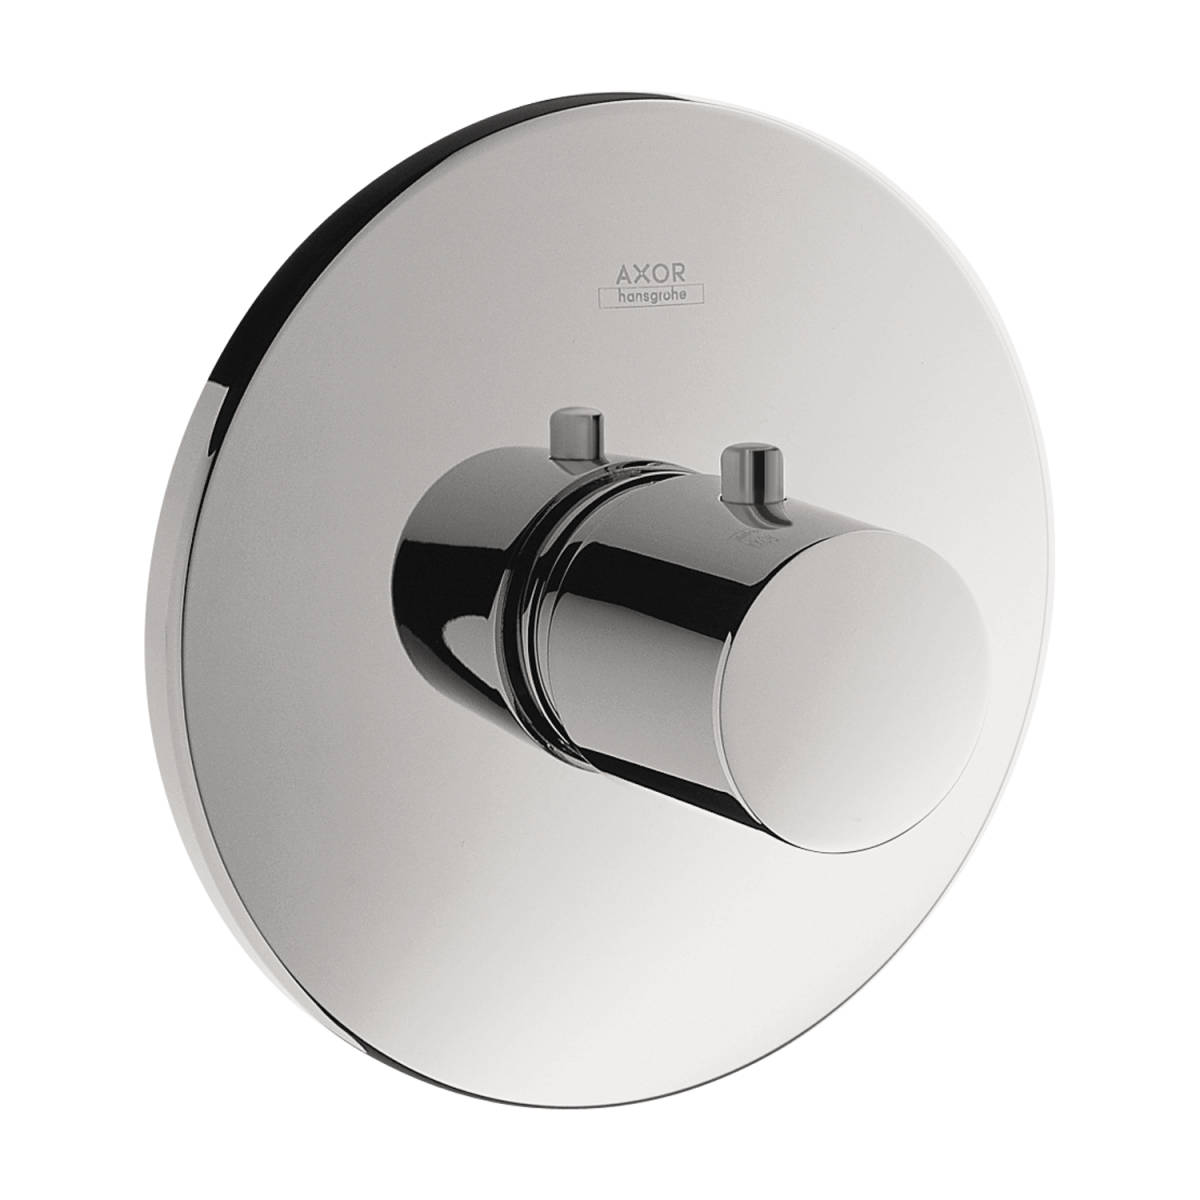 Thermostat HighFlow for concealed installation round, Chrome, 38715001